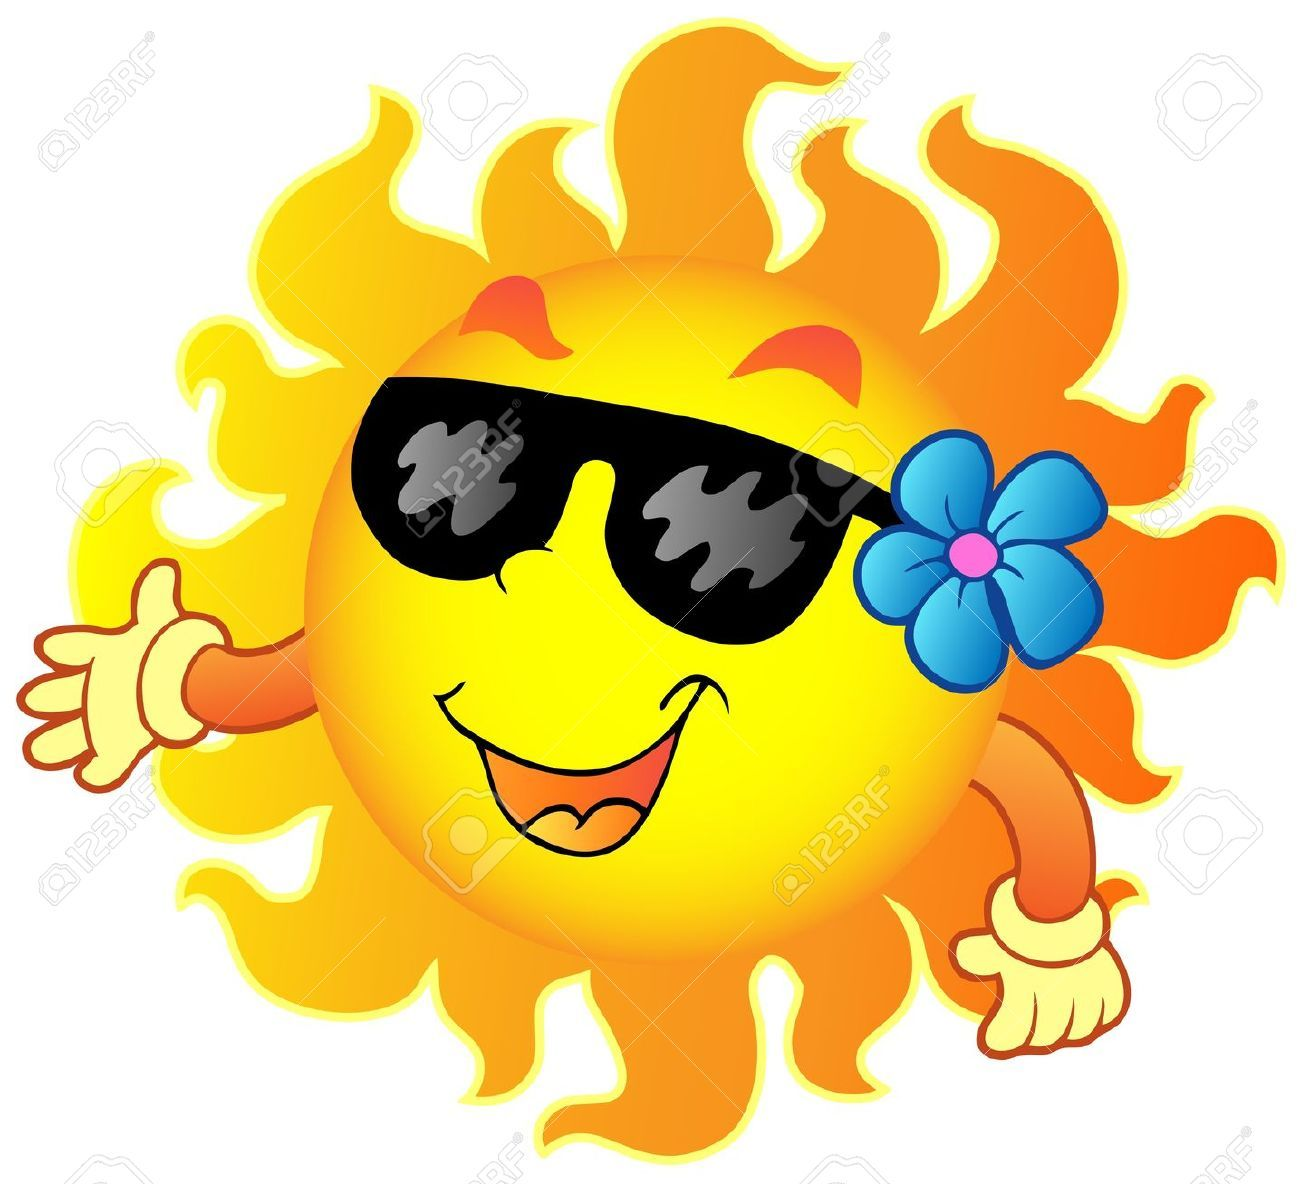 Sunny clipart cool sunglasses. Awesome happy summer sun